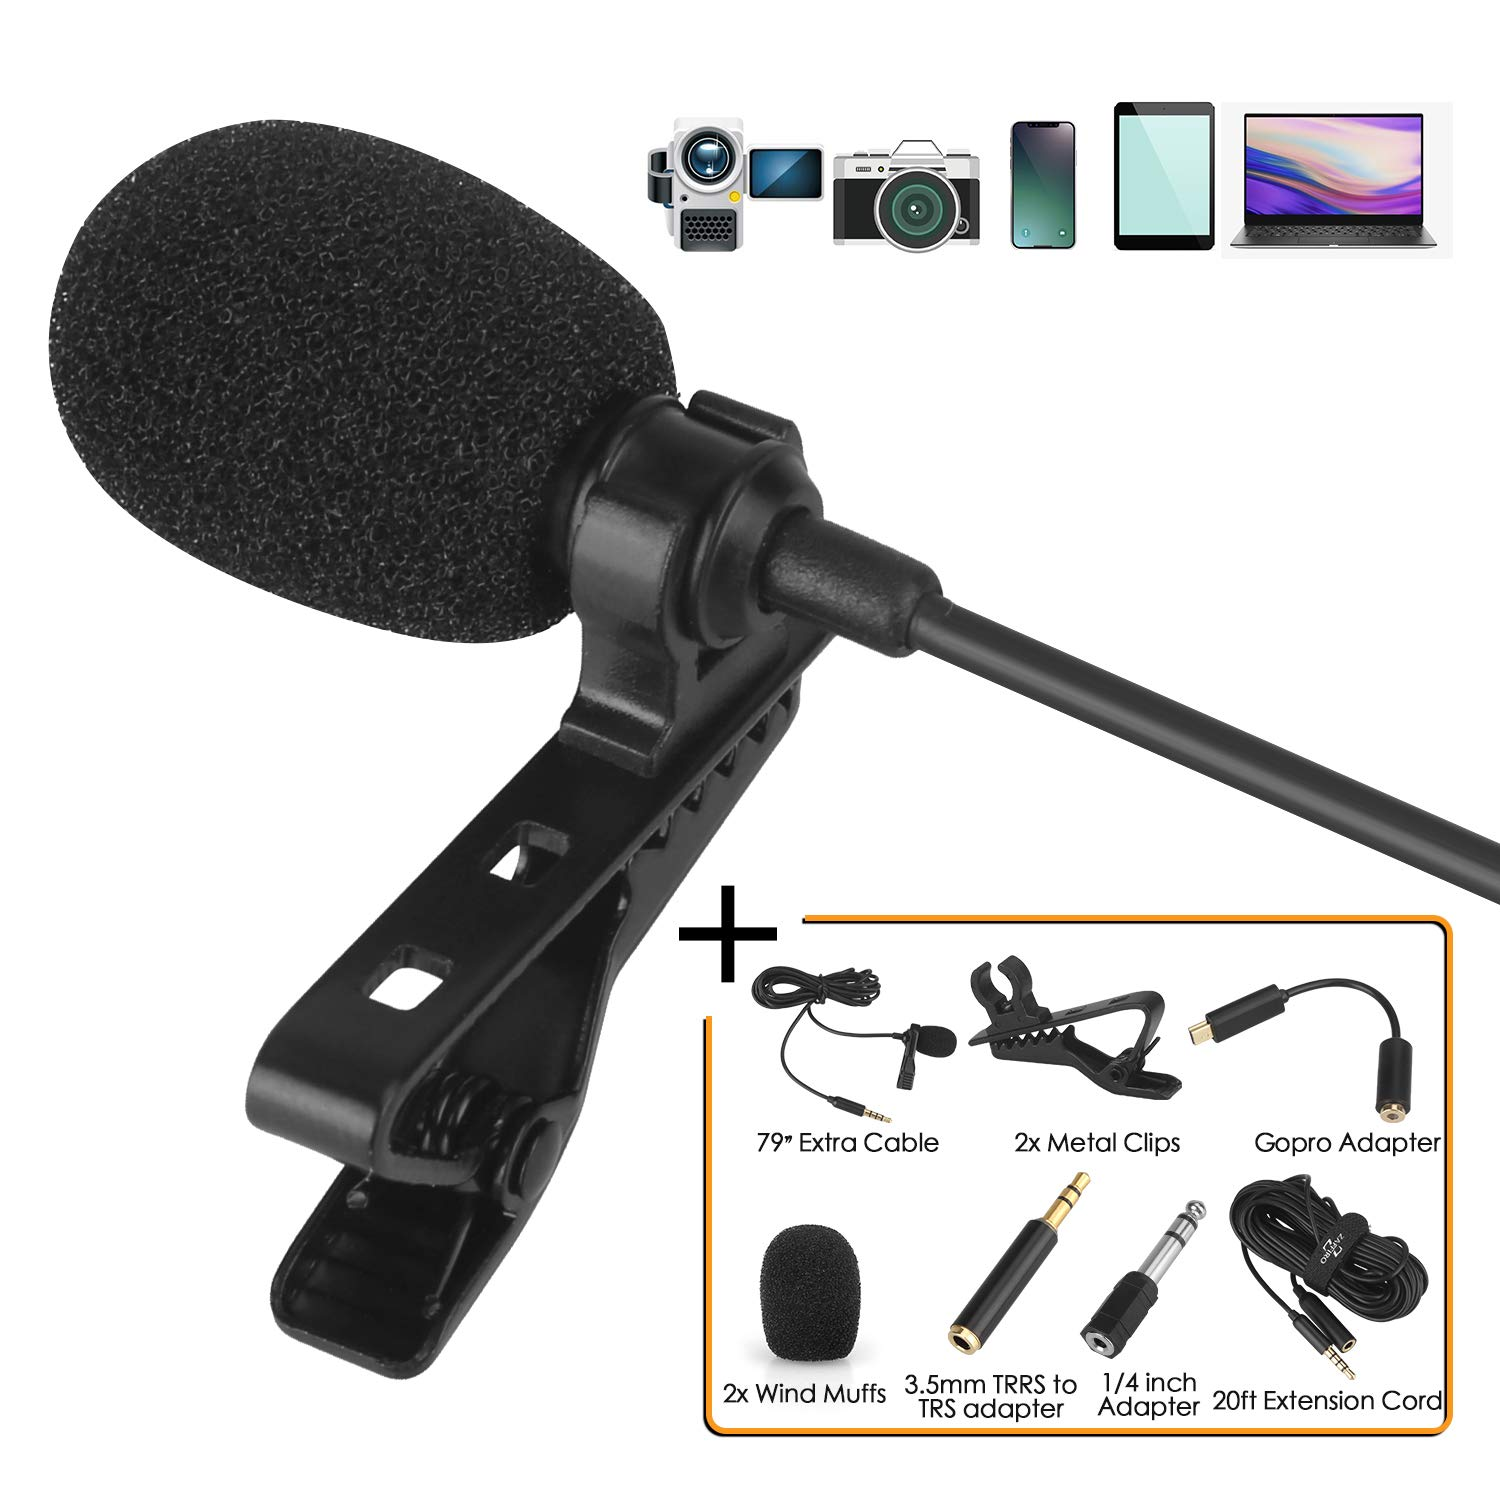 Lavalier Lapel Microphone Kit - Clip on Omnidirectional Lav Mic for iPhone, Ipad, DSLR, GoPro,Camcorder, Zoom, PC, MacBook, Android, Smartphones,Lapel Mic for YouTube, Streaming, Video Recording by MOTECH